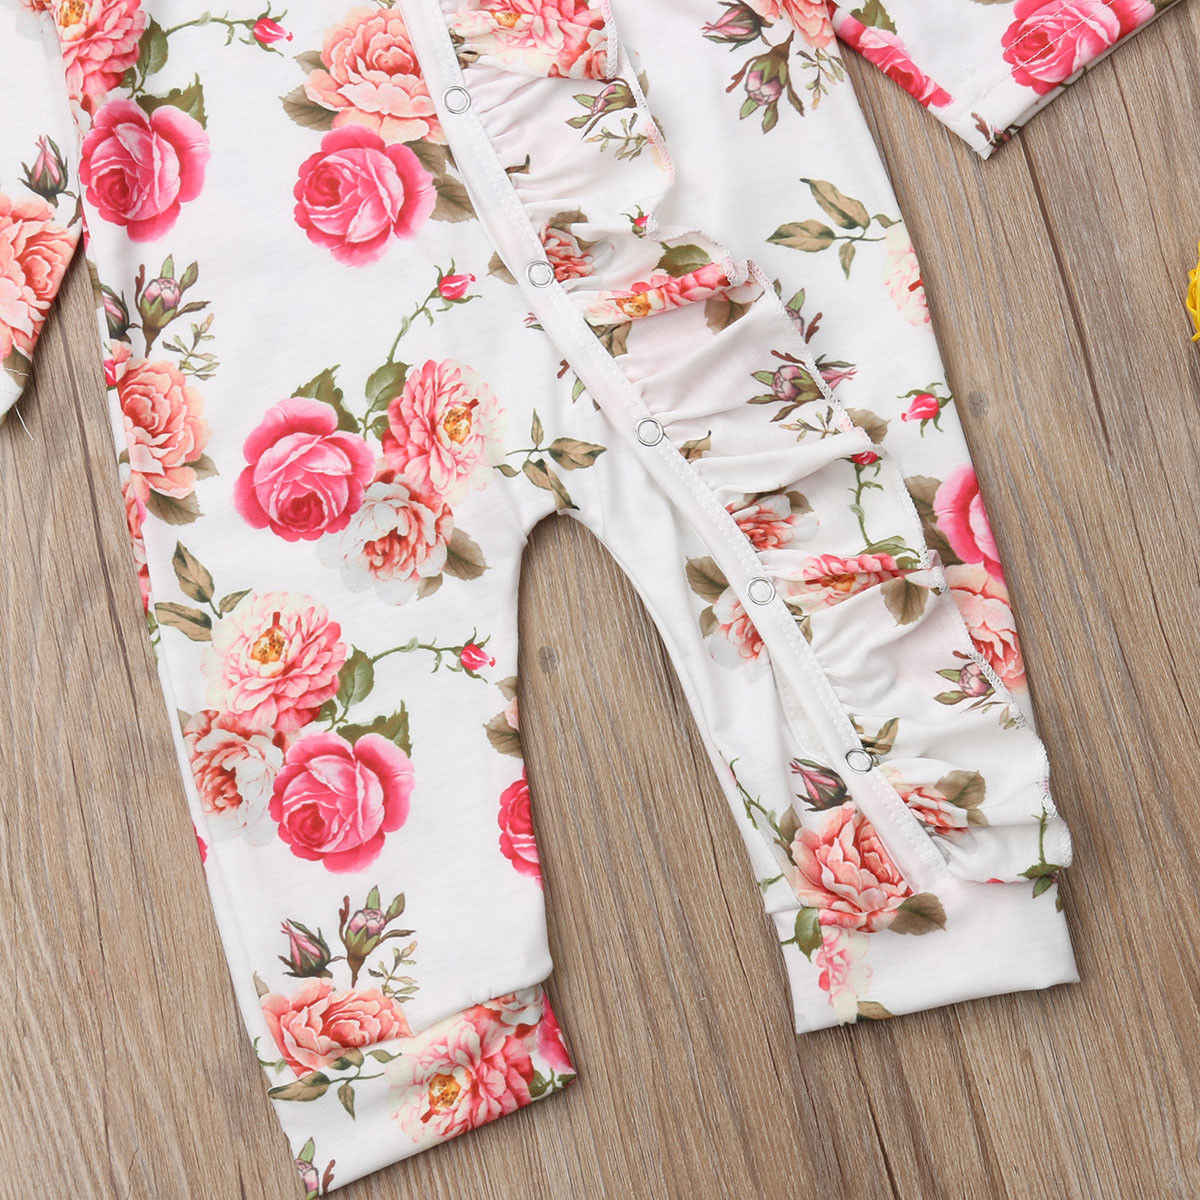 db84466c30e ... Newborn Baby Girl Floral Romper Fashion New Long Sleeve Button Party  Jumpsuit Holiday Girls Casual Cotton